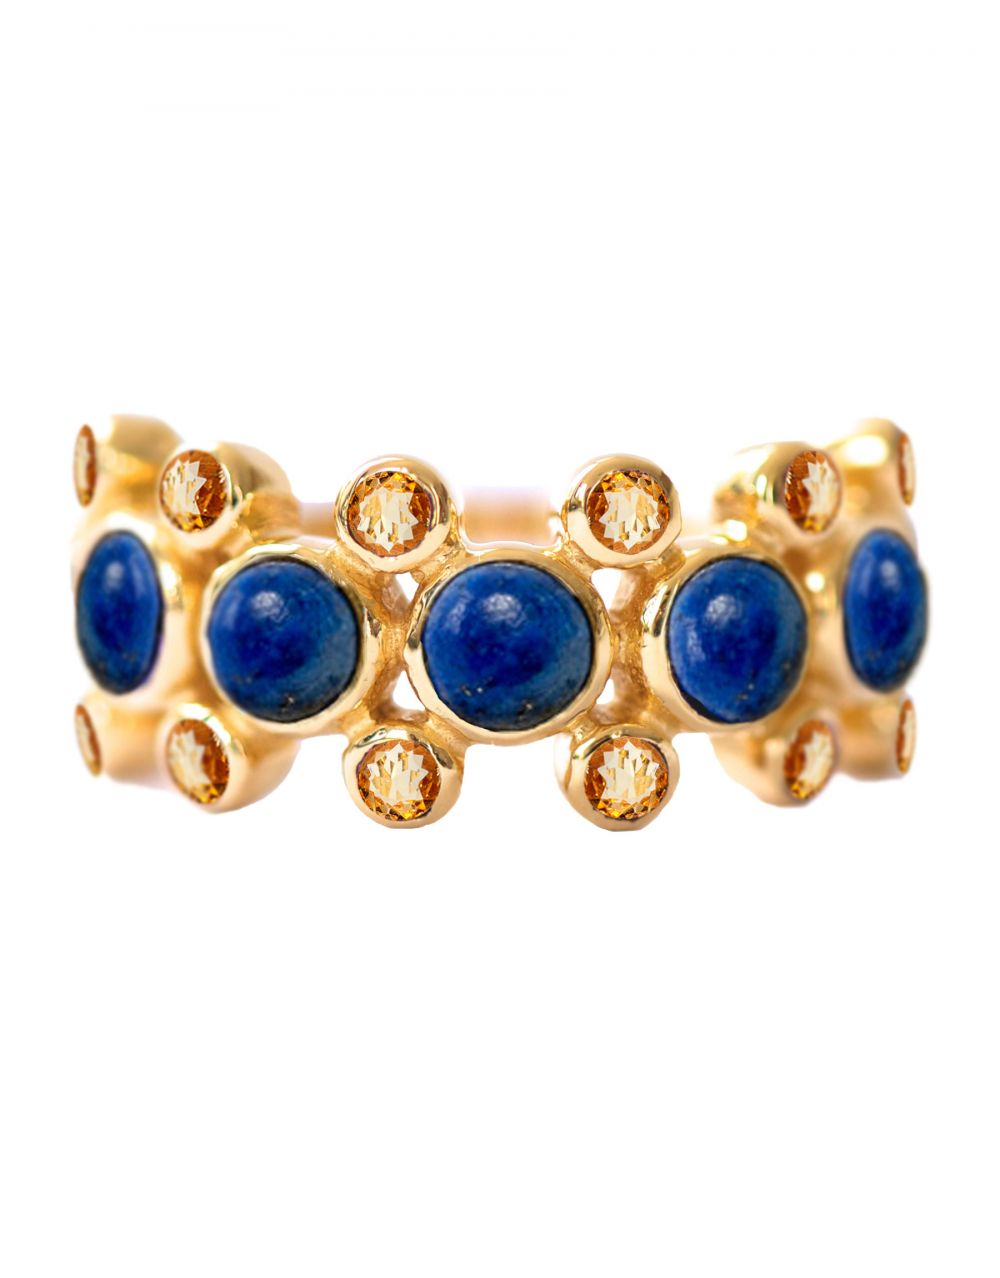 Rebecca Ring<br /><i><small>18K Gold Plated with Lapis Lazuli & Yellow Topaz</small></i><br /> - Eddera